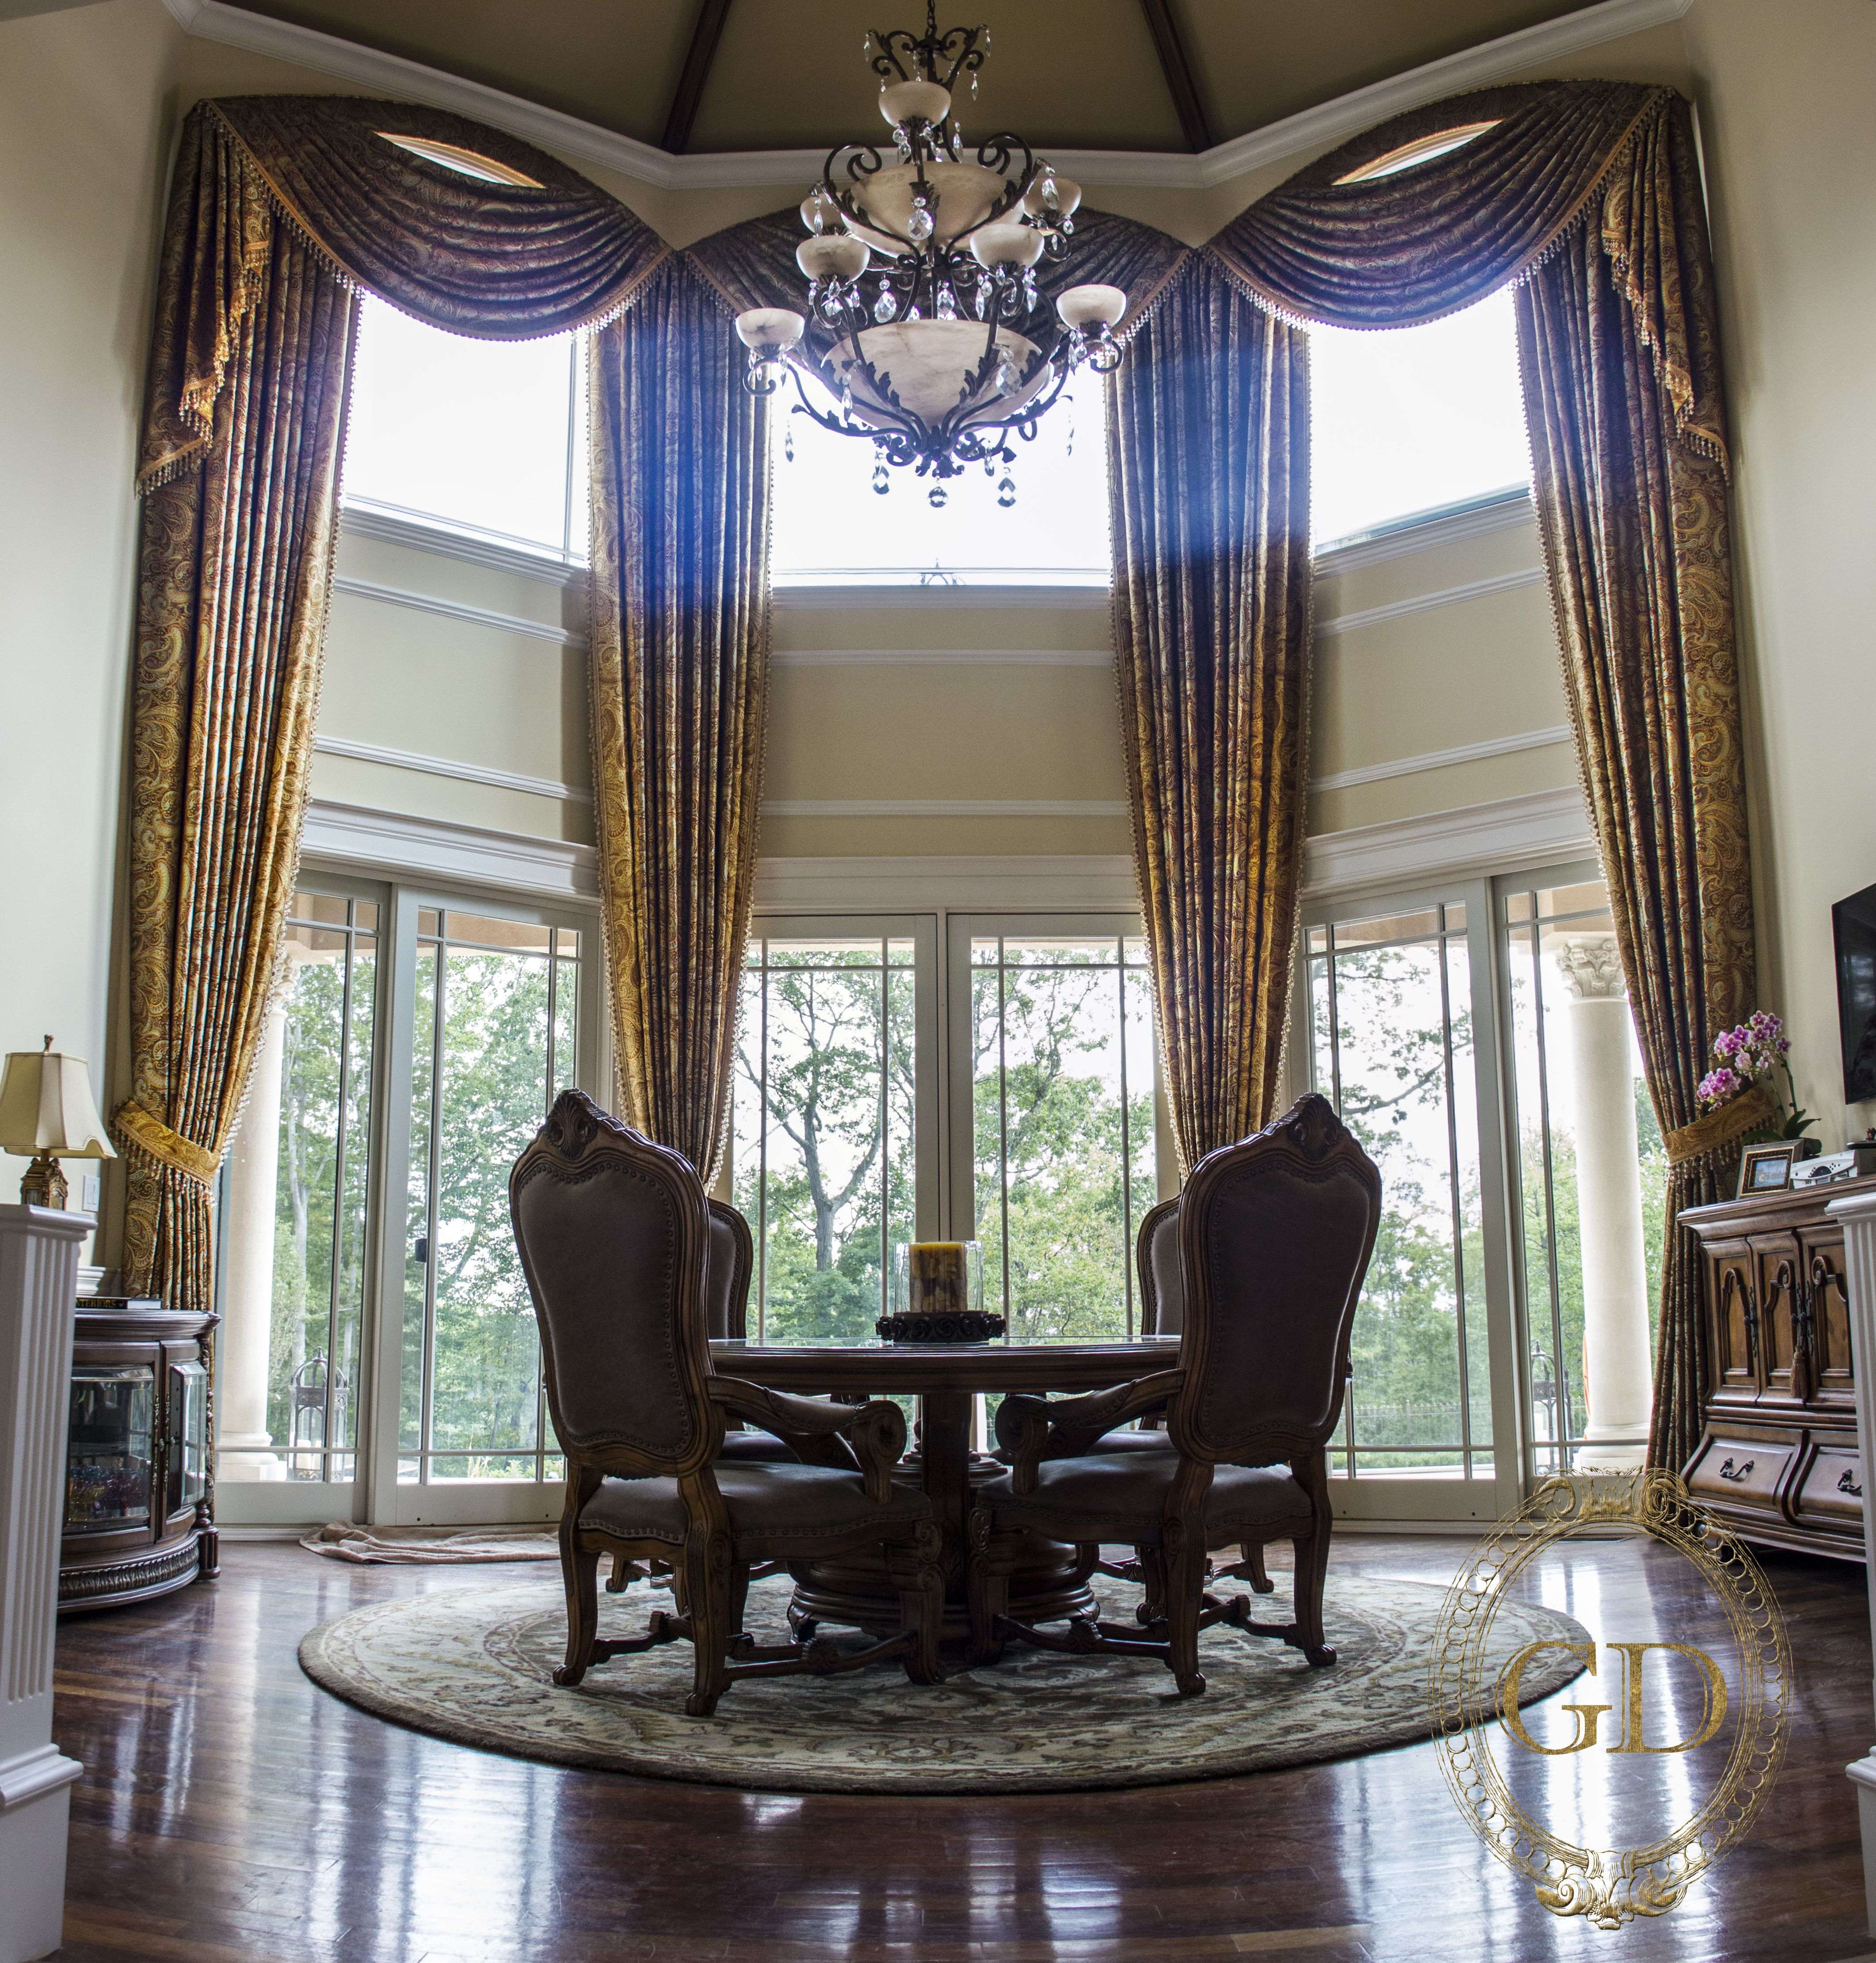 Window Treatments Charming And Spacious Living Room Design With High On The Ceiling Gold Curtains Arched Curtain Rods Dark Brown Wood